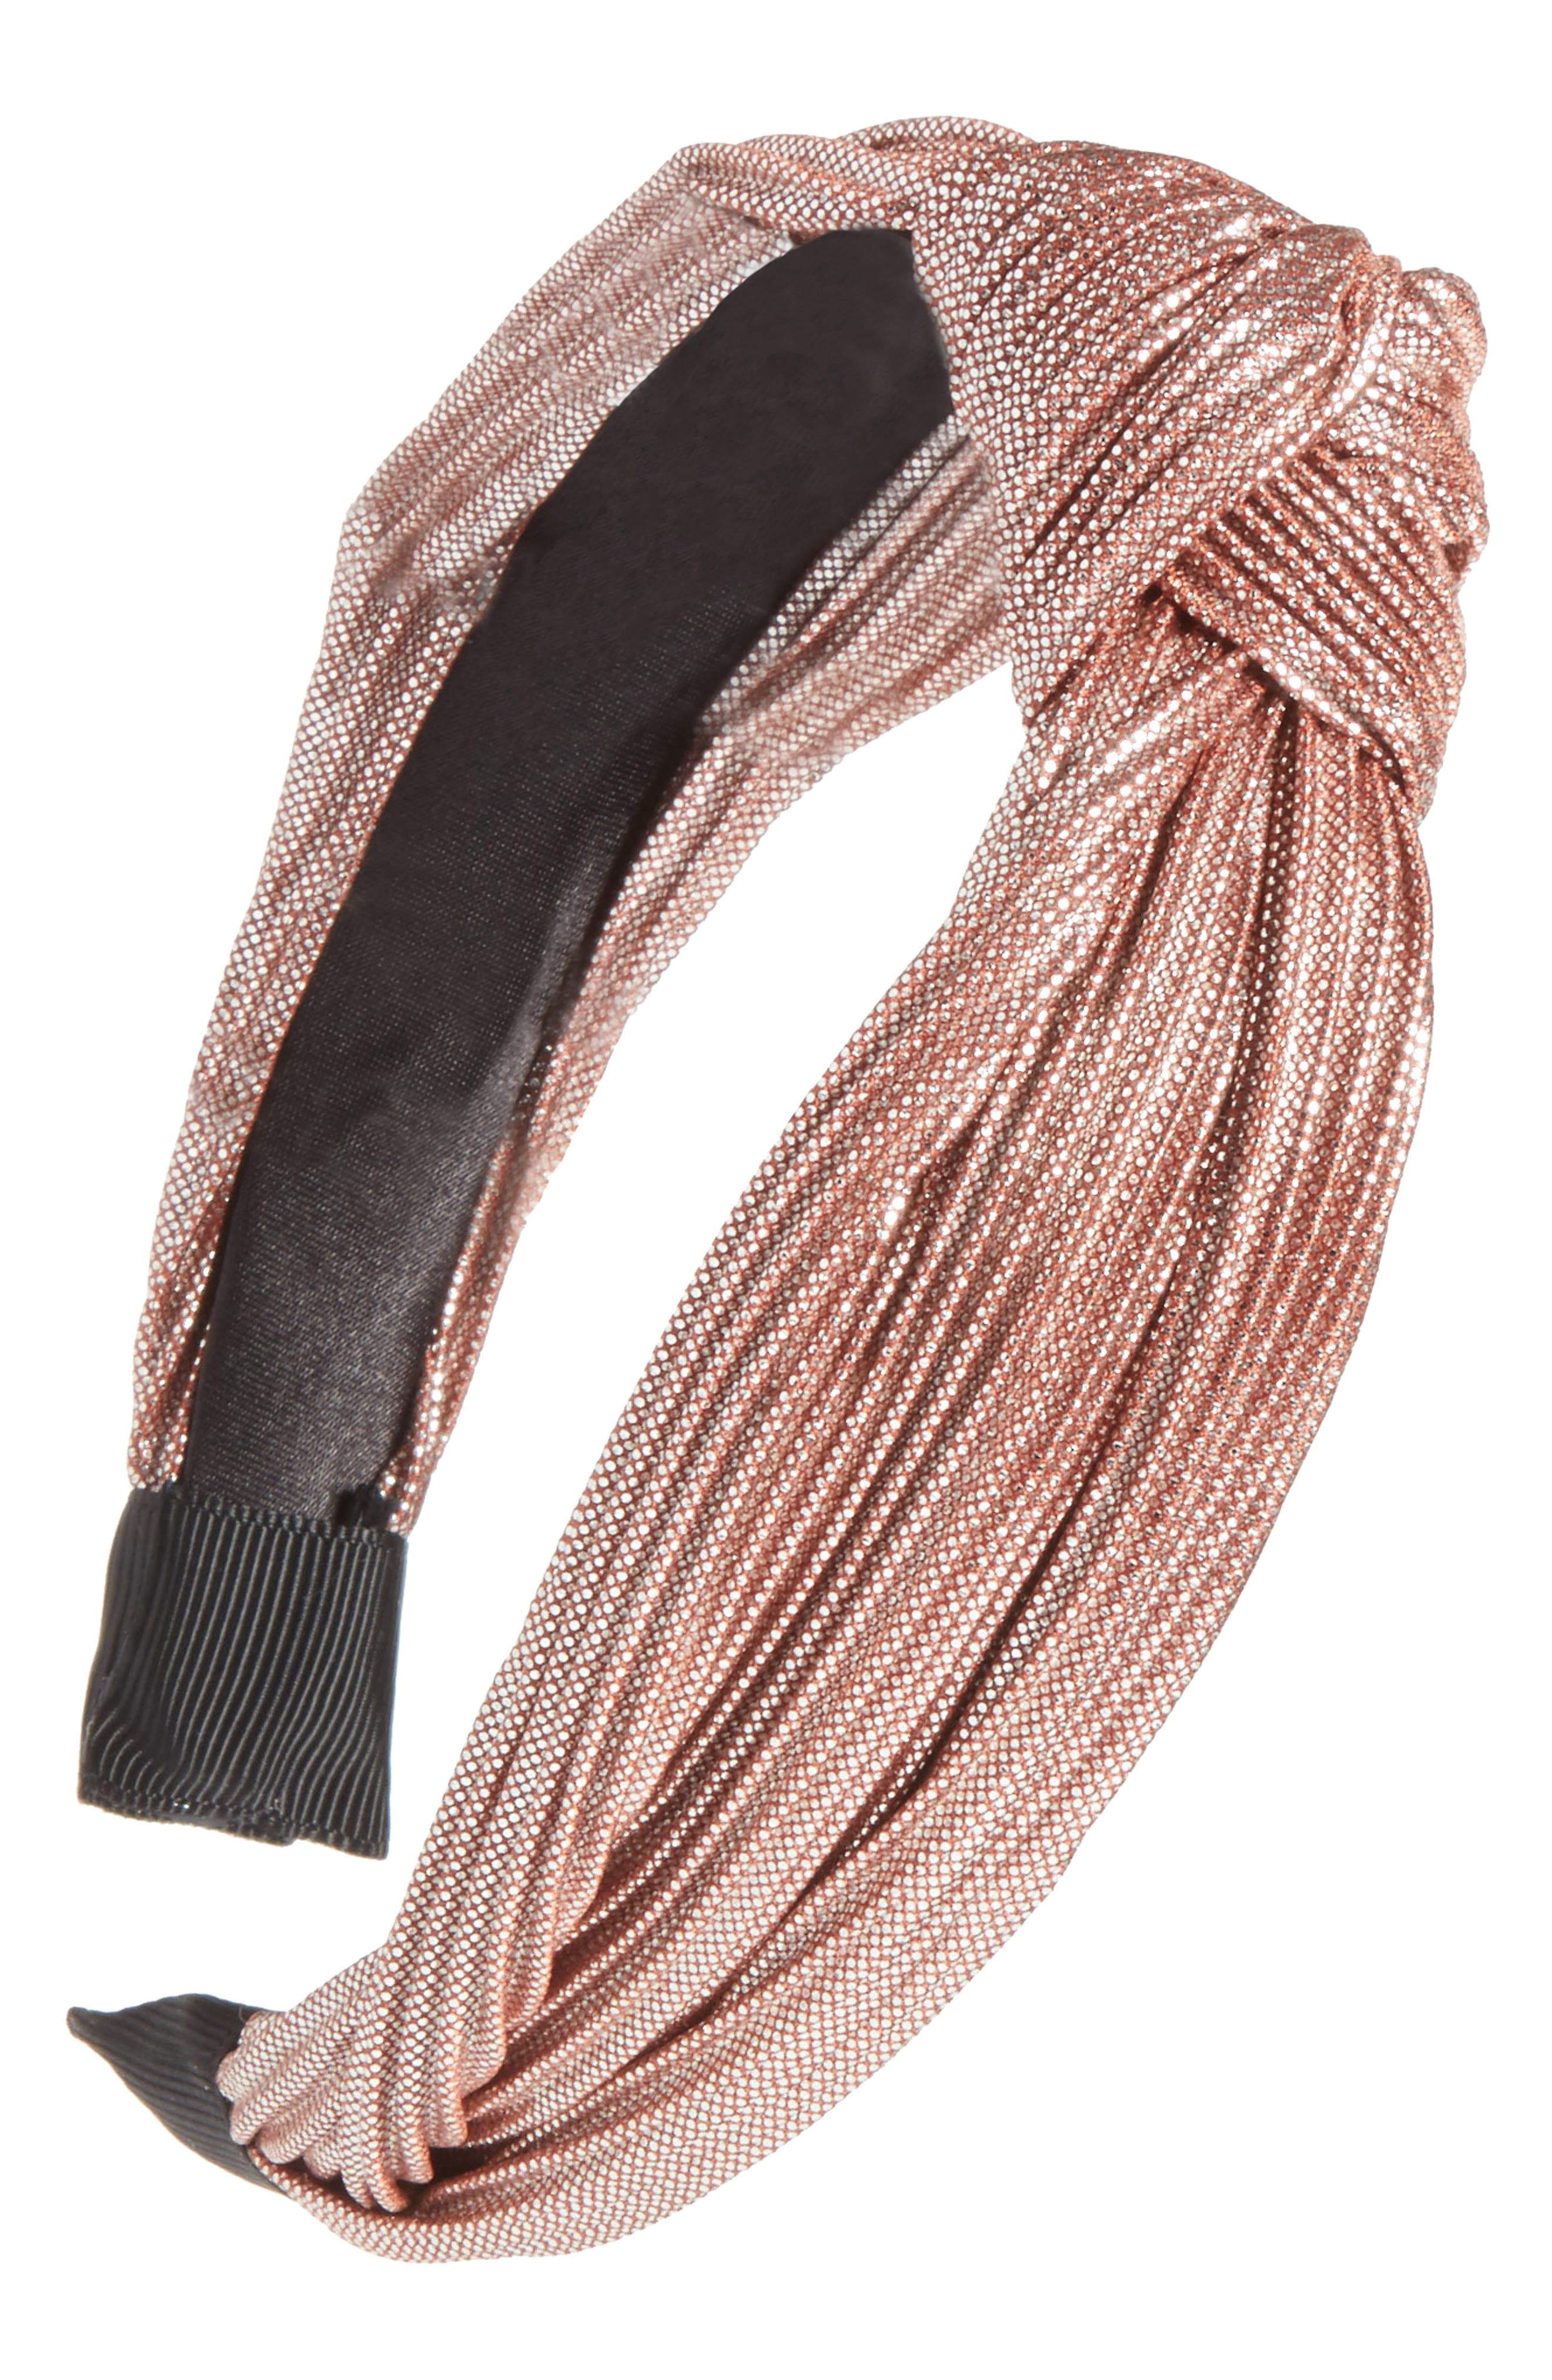 Rose Knotted Headband,                             Main thumbnail 1, color,                             650